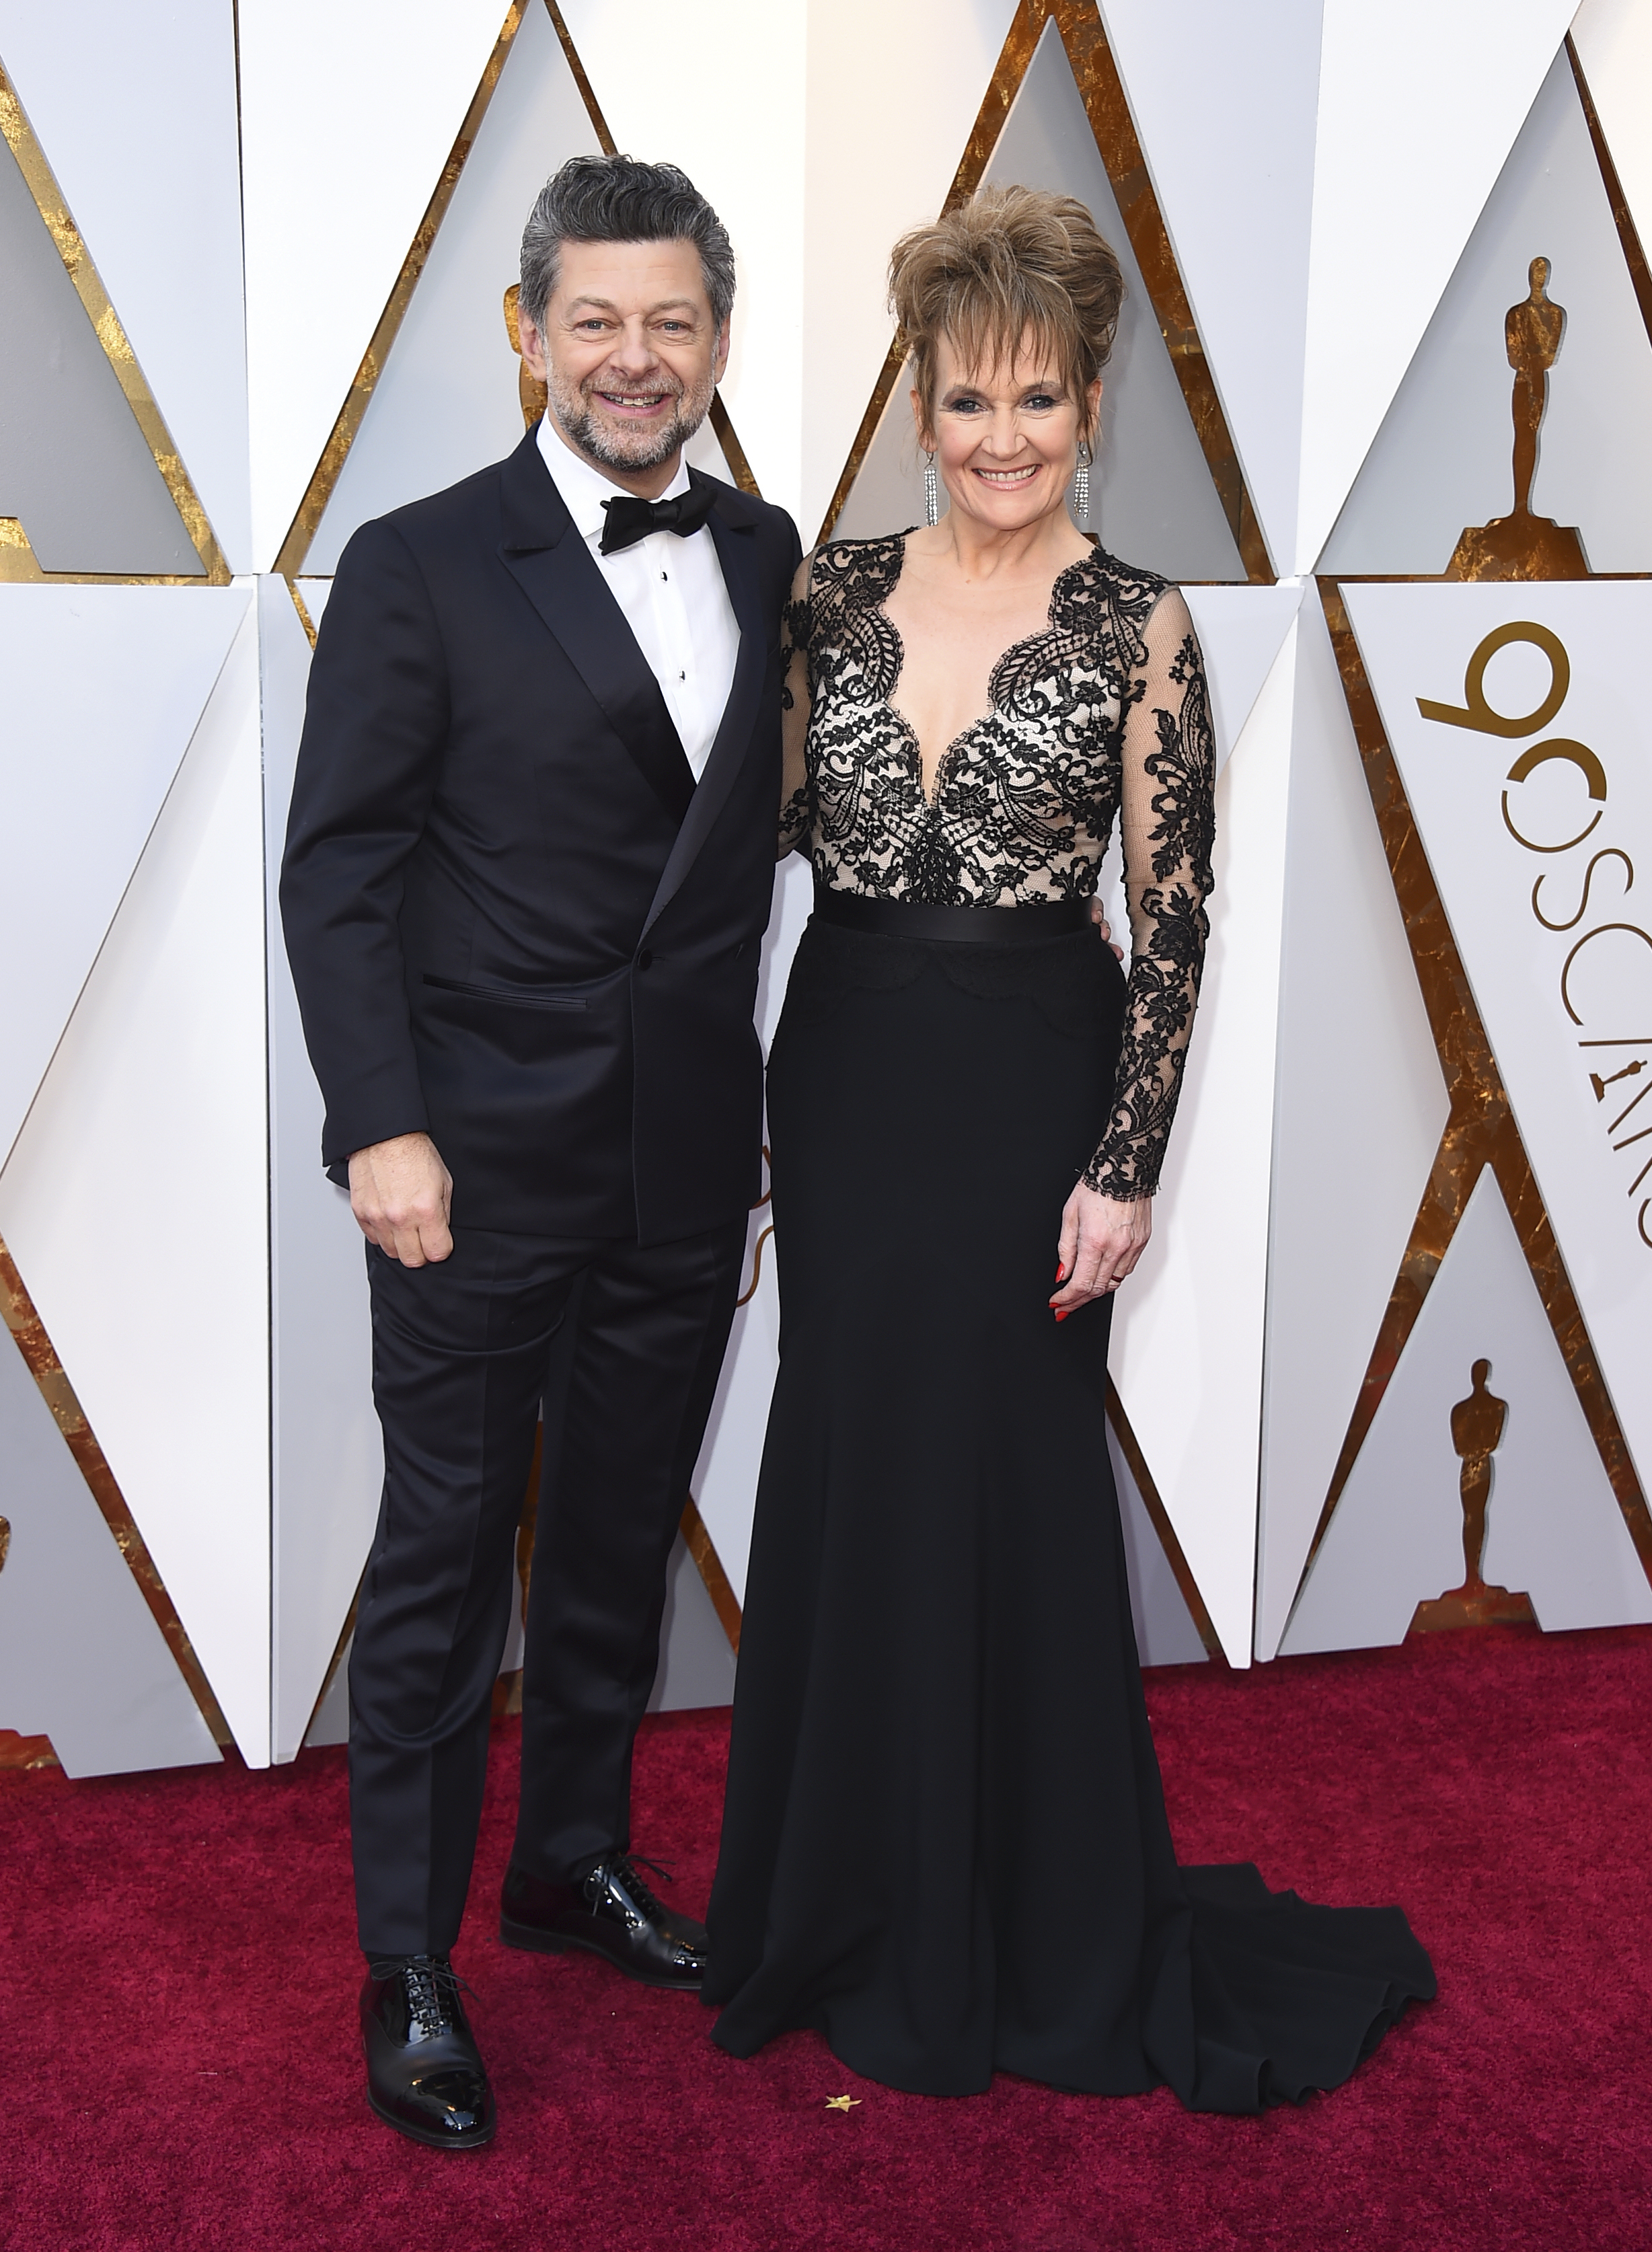 "<div class=""meta image-caption""><div class=""origin-logo origin-image none""><span>none</span></div><span class=""caption-text"">Andy Serkis, left, and Lorraine Ashbourne arrive at the Oscars on Sunday, March 4, 2018, at the Dolby Theatre in Los Angeles. (Jordan Strauss/Invision/AP)</span></div>"